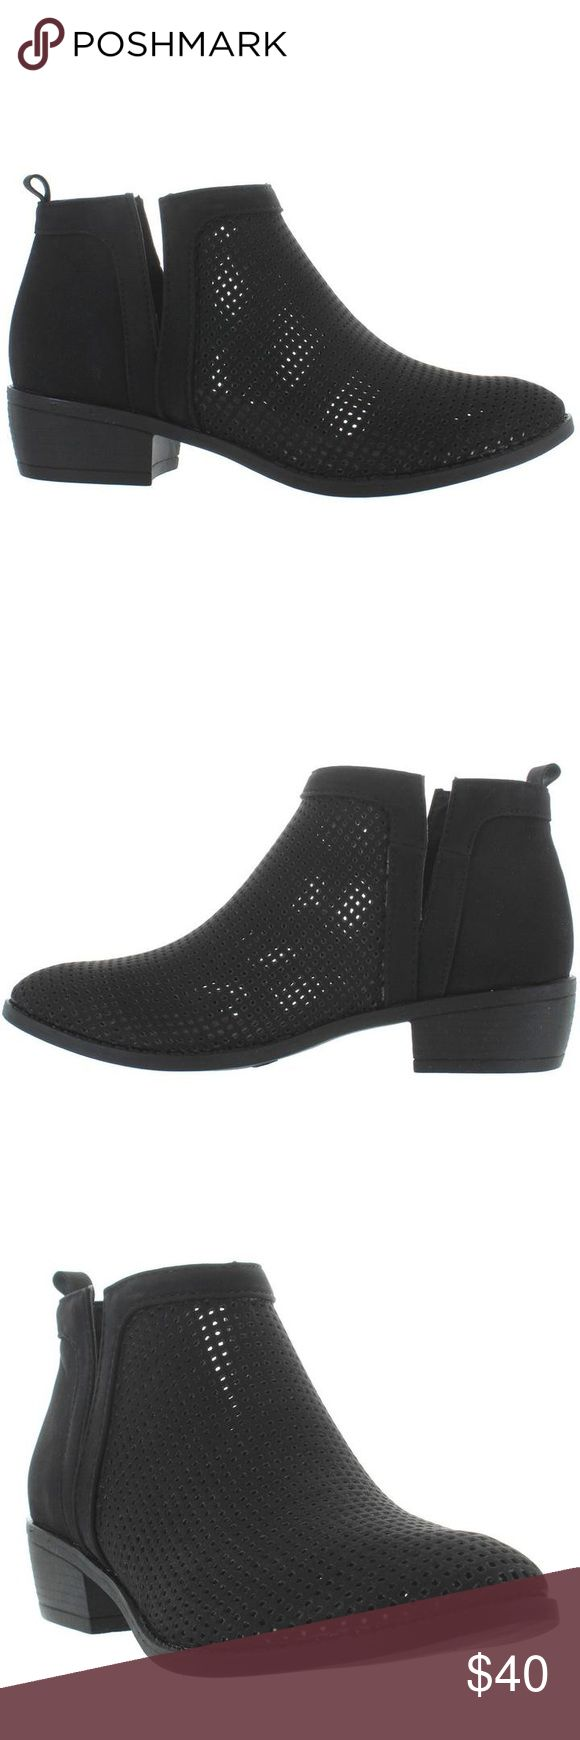 Restricted Black Ankle Boots New! Restricted Shoes